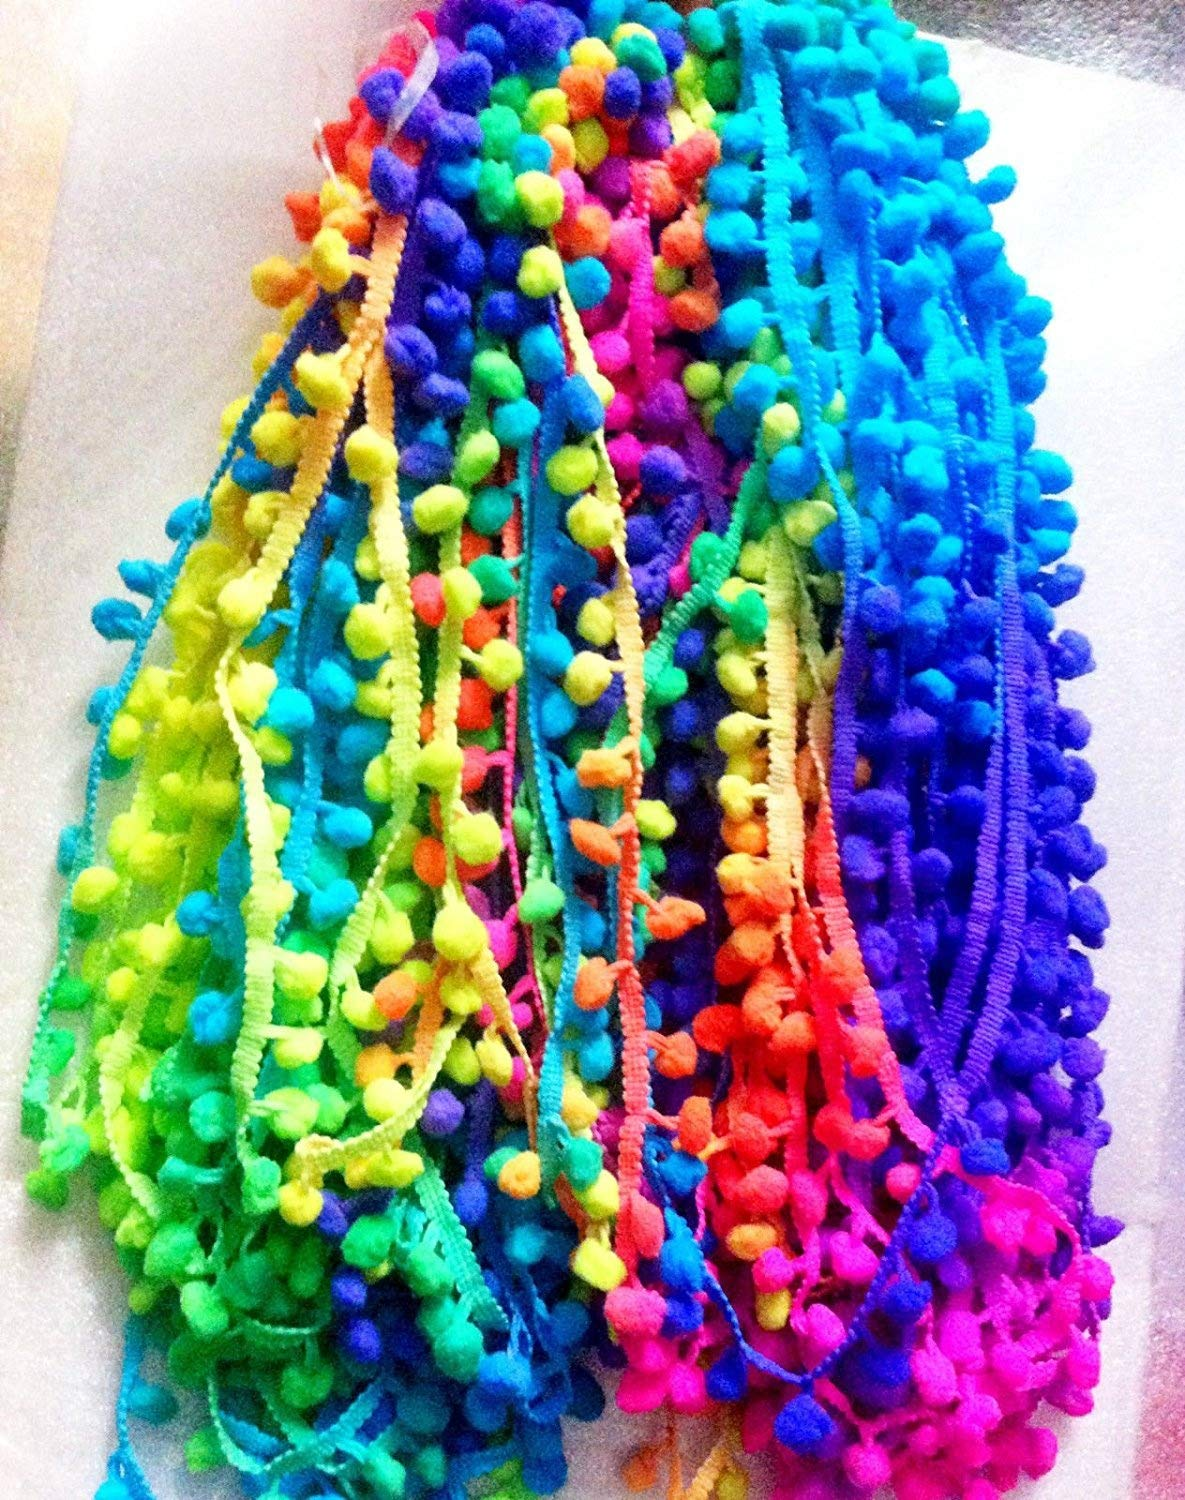 POM POM BOBBLE TRIM FRINGE - Multicolored RAINBOW- Ball 1cm (sold by the metre)) HomeBuy